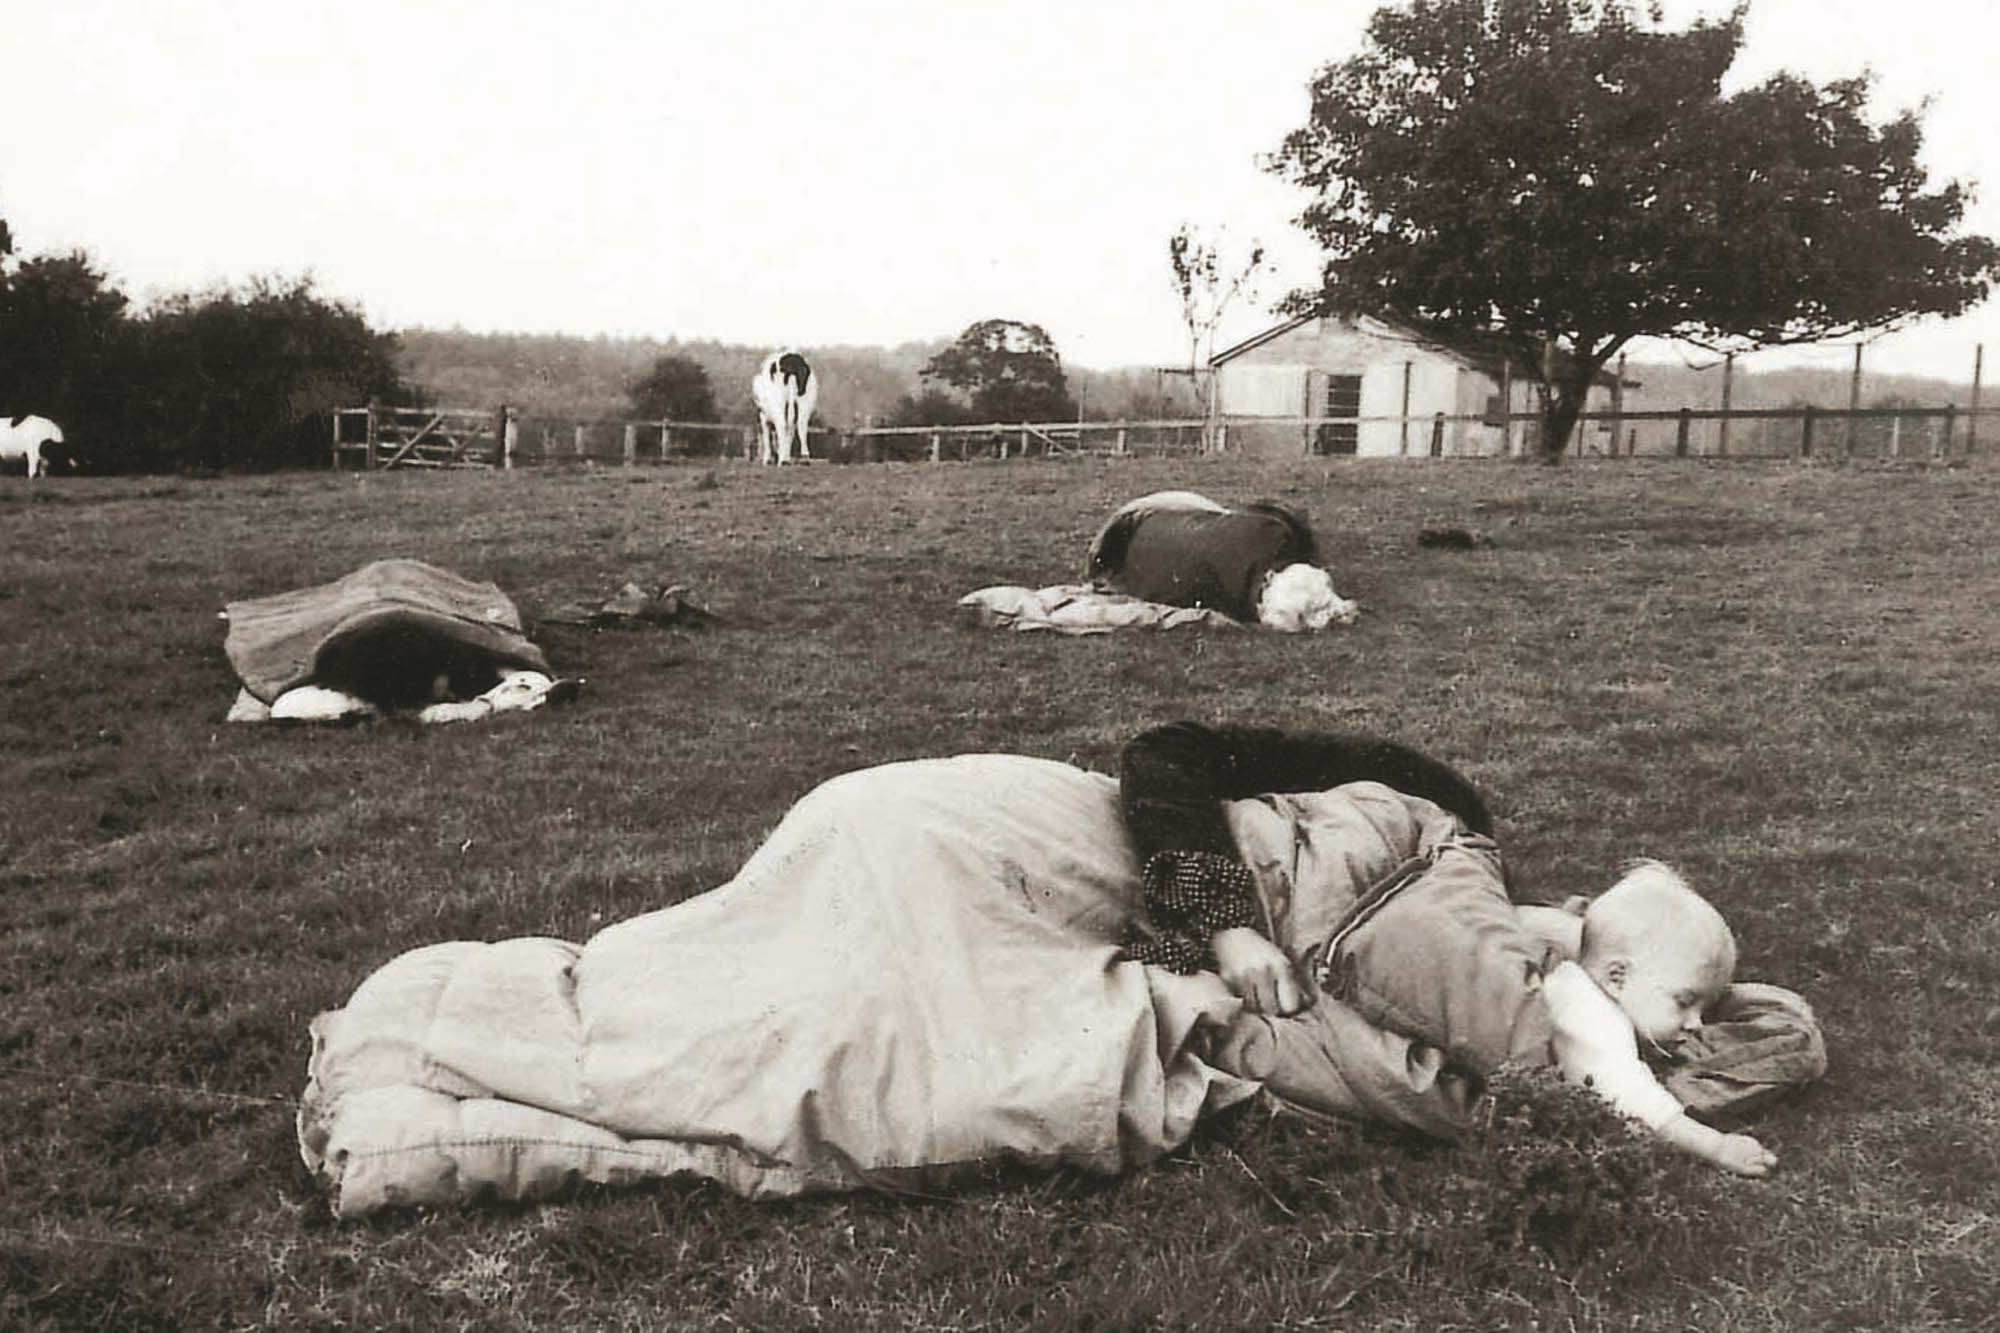 Susan Hiller, Dream Mapping, 1974. Participants sleeping in a field at Purdies Farm, Hampshire © The Estate of Susan Hiller